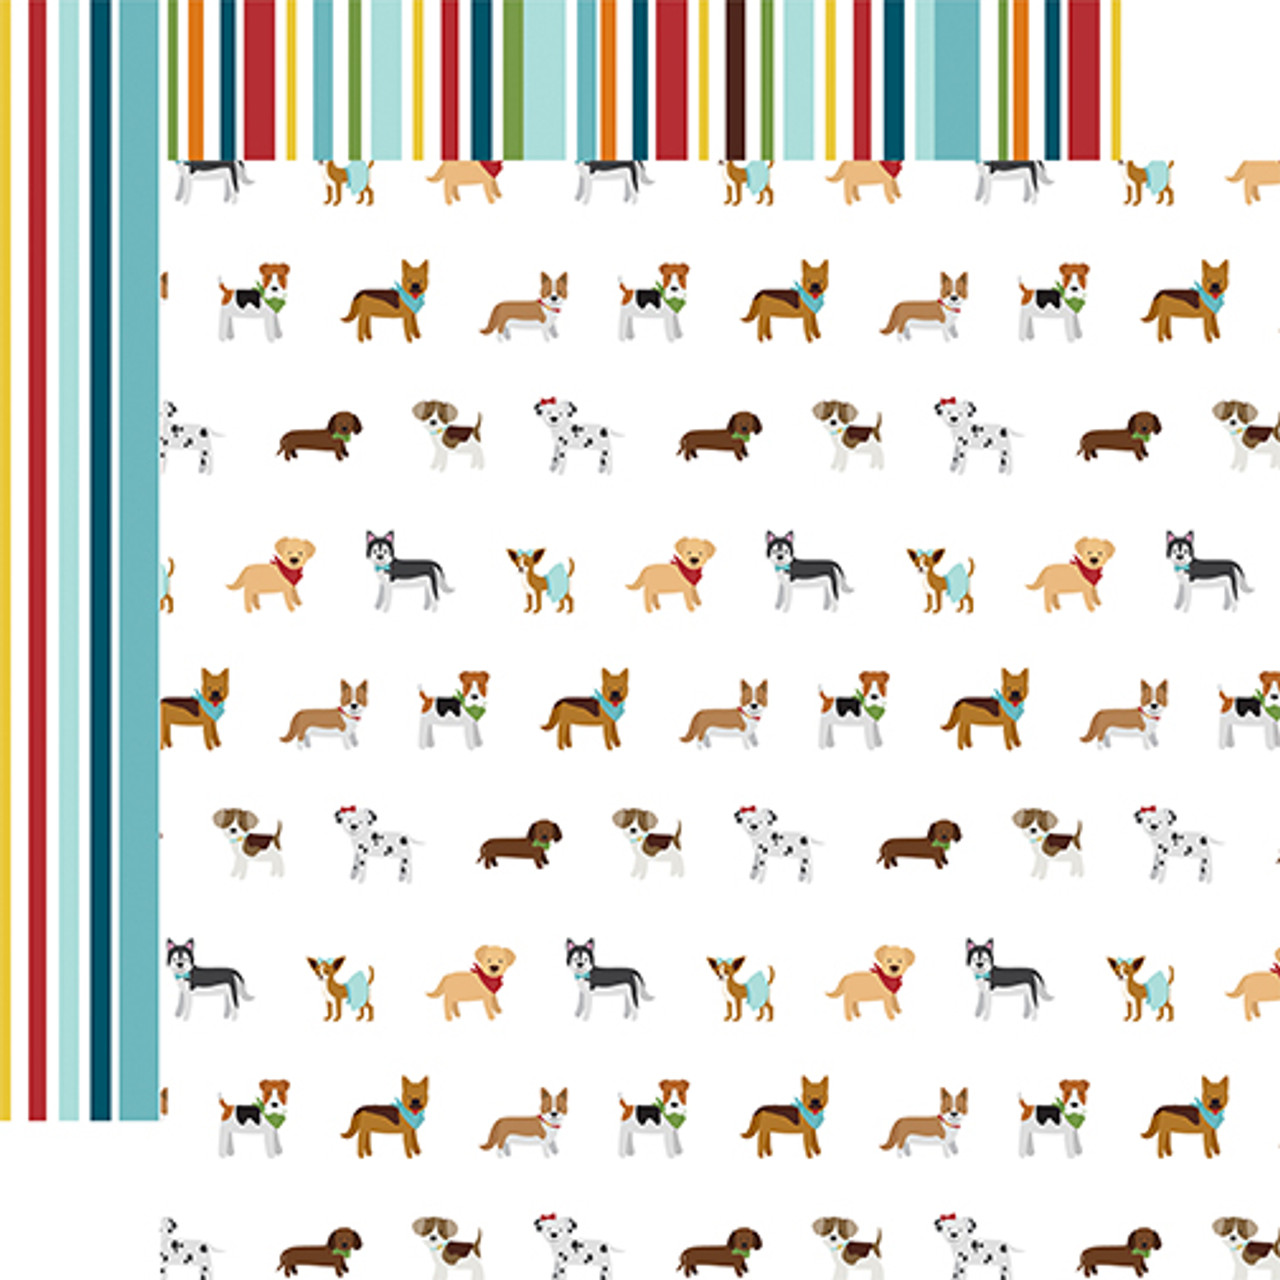 My Dog Collection Puppy Party 12 x 12 Double-Sided Scrapbook Paper by Echo Park Paper